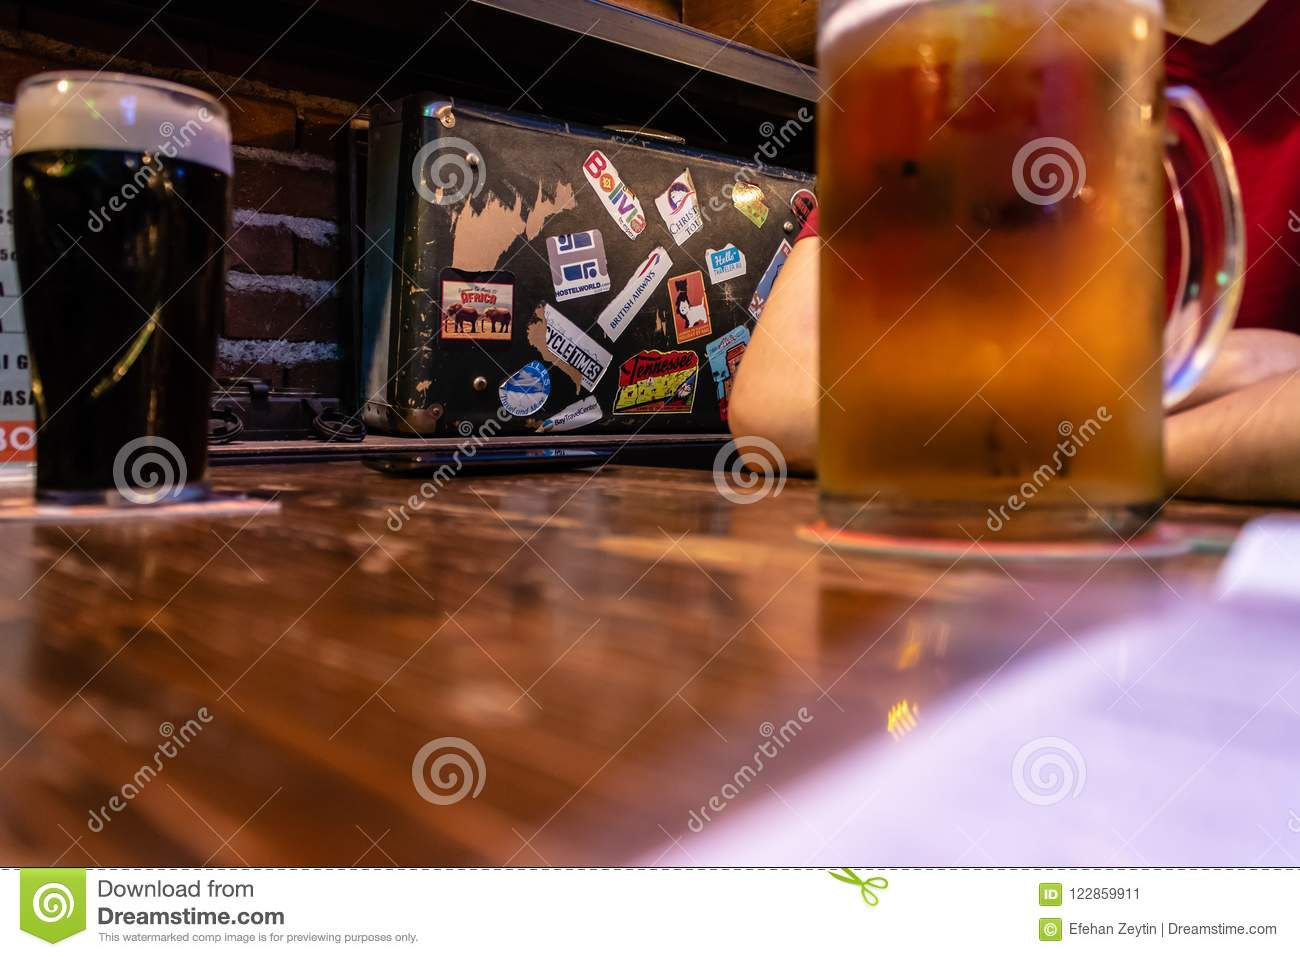 People drinking beer with good ambiance